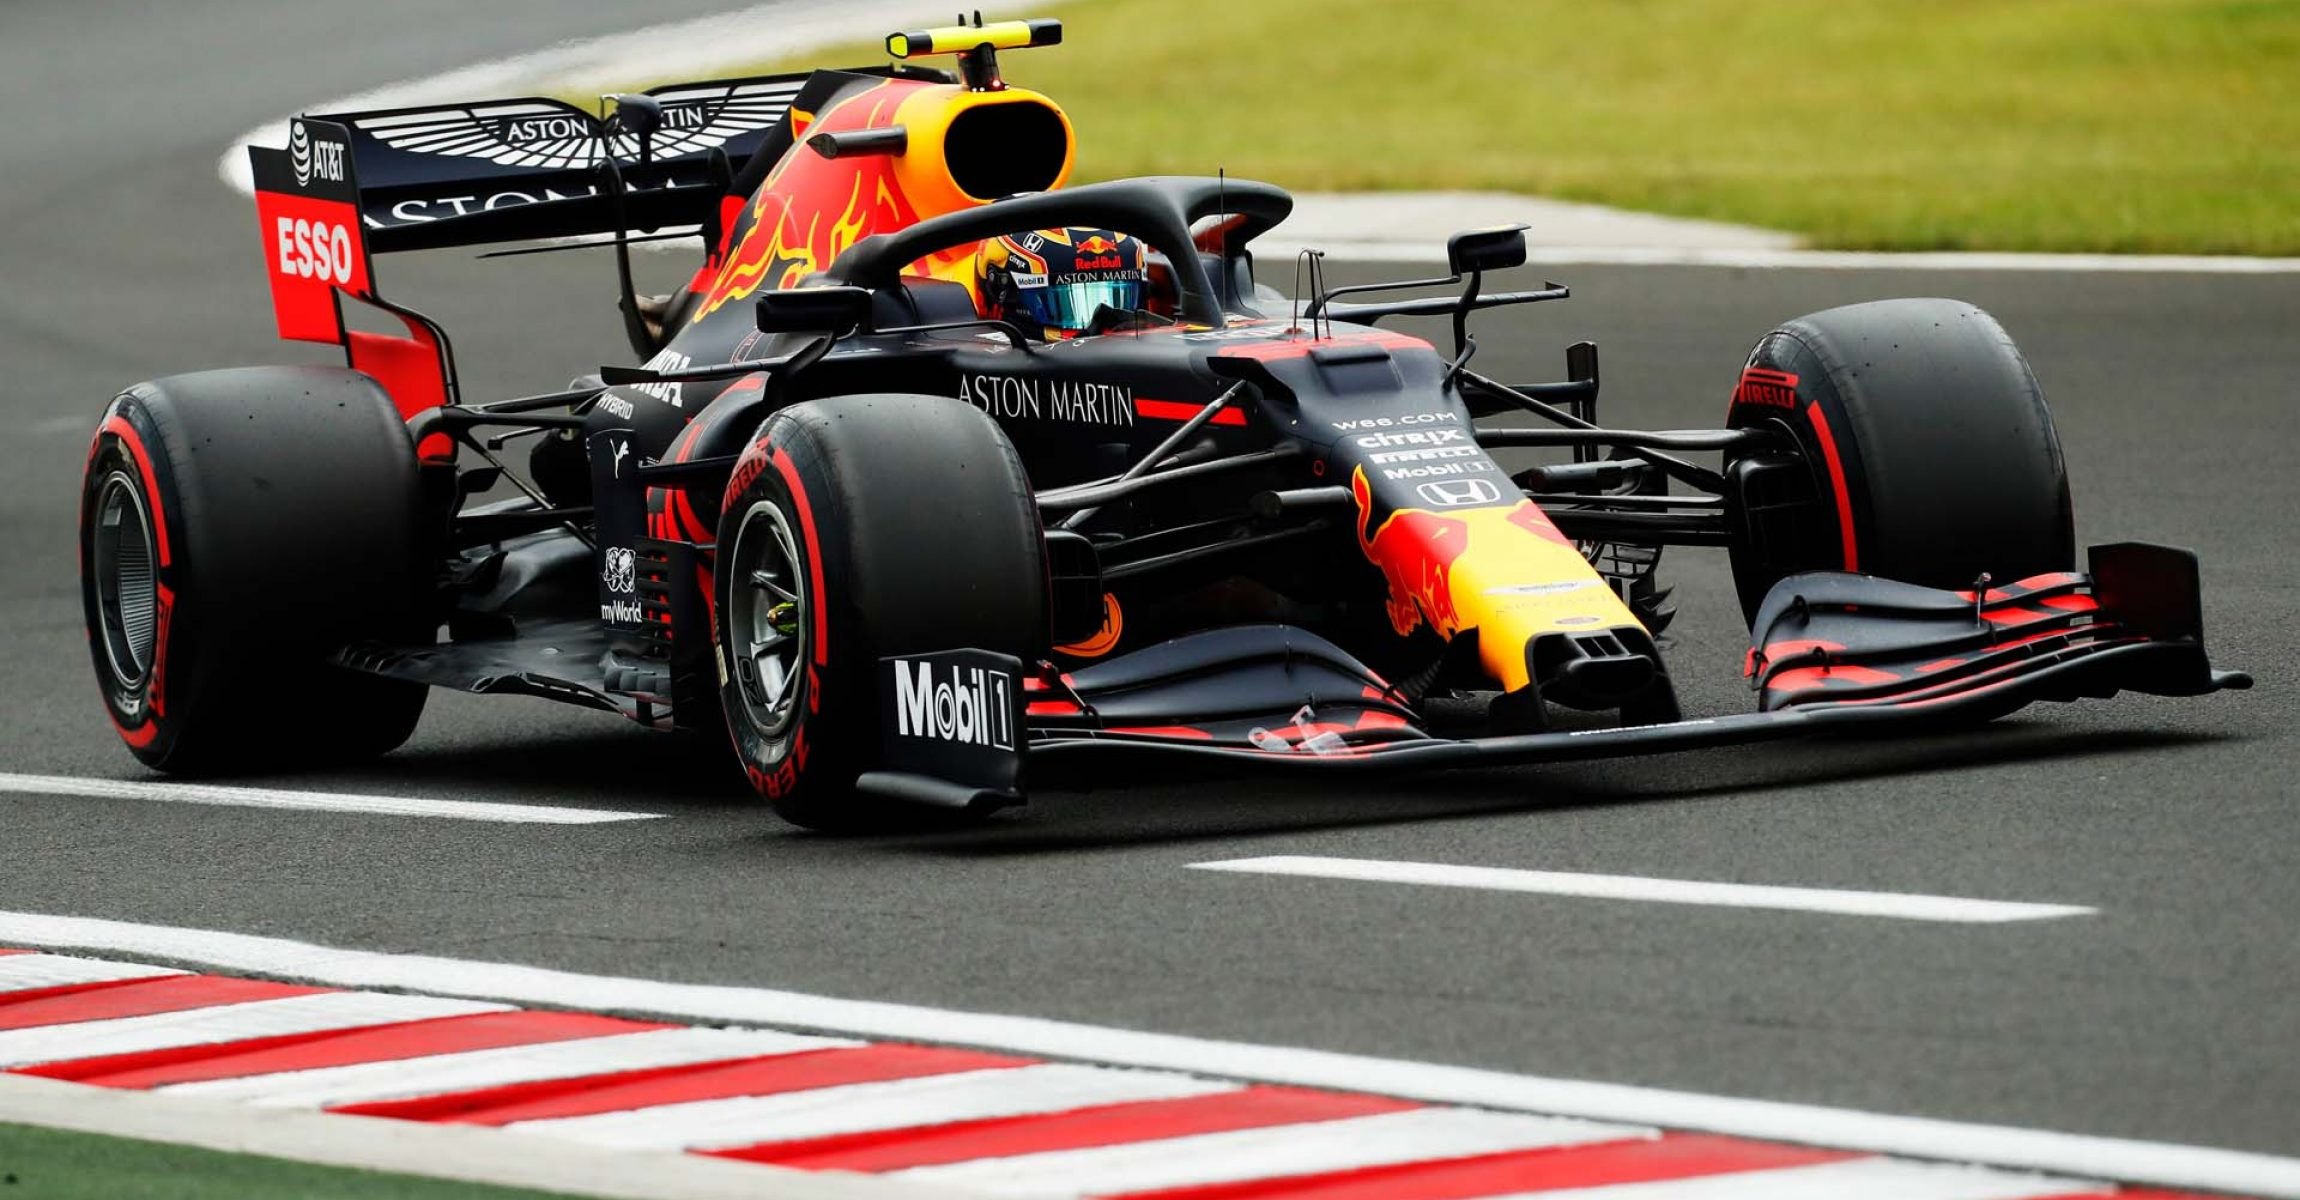 BUDAPEST, HUNGARY - JULY 18: Alexander Albon of Thailand driving the (23) Aston Martin Red Bull Racing RB16 on track during qualifying for the F1 Grand Prix of Hungary at Hungaroring on July 18, 2020 in Budapest, Hungary. (Photo by Darko Bandic/Pool via Getty Images) // Getty Images / Red Bull Content Pool // AP-24NVWU1412111 // Usage for editorial use only //